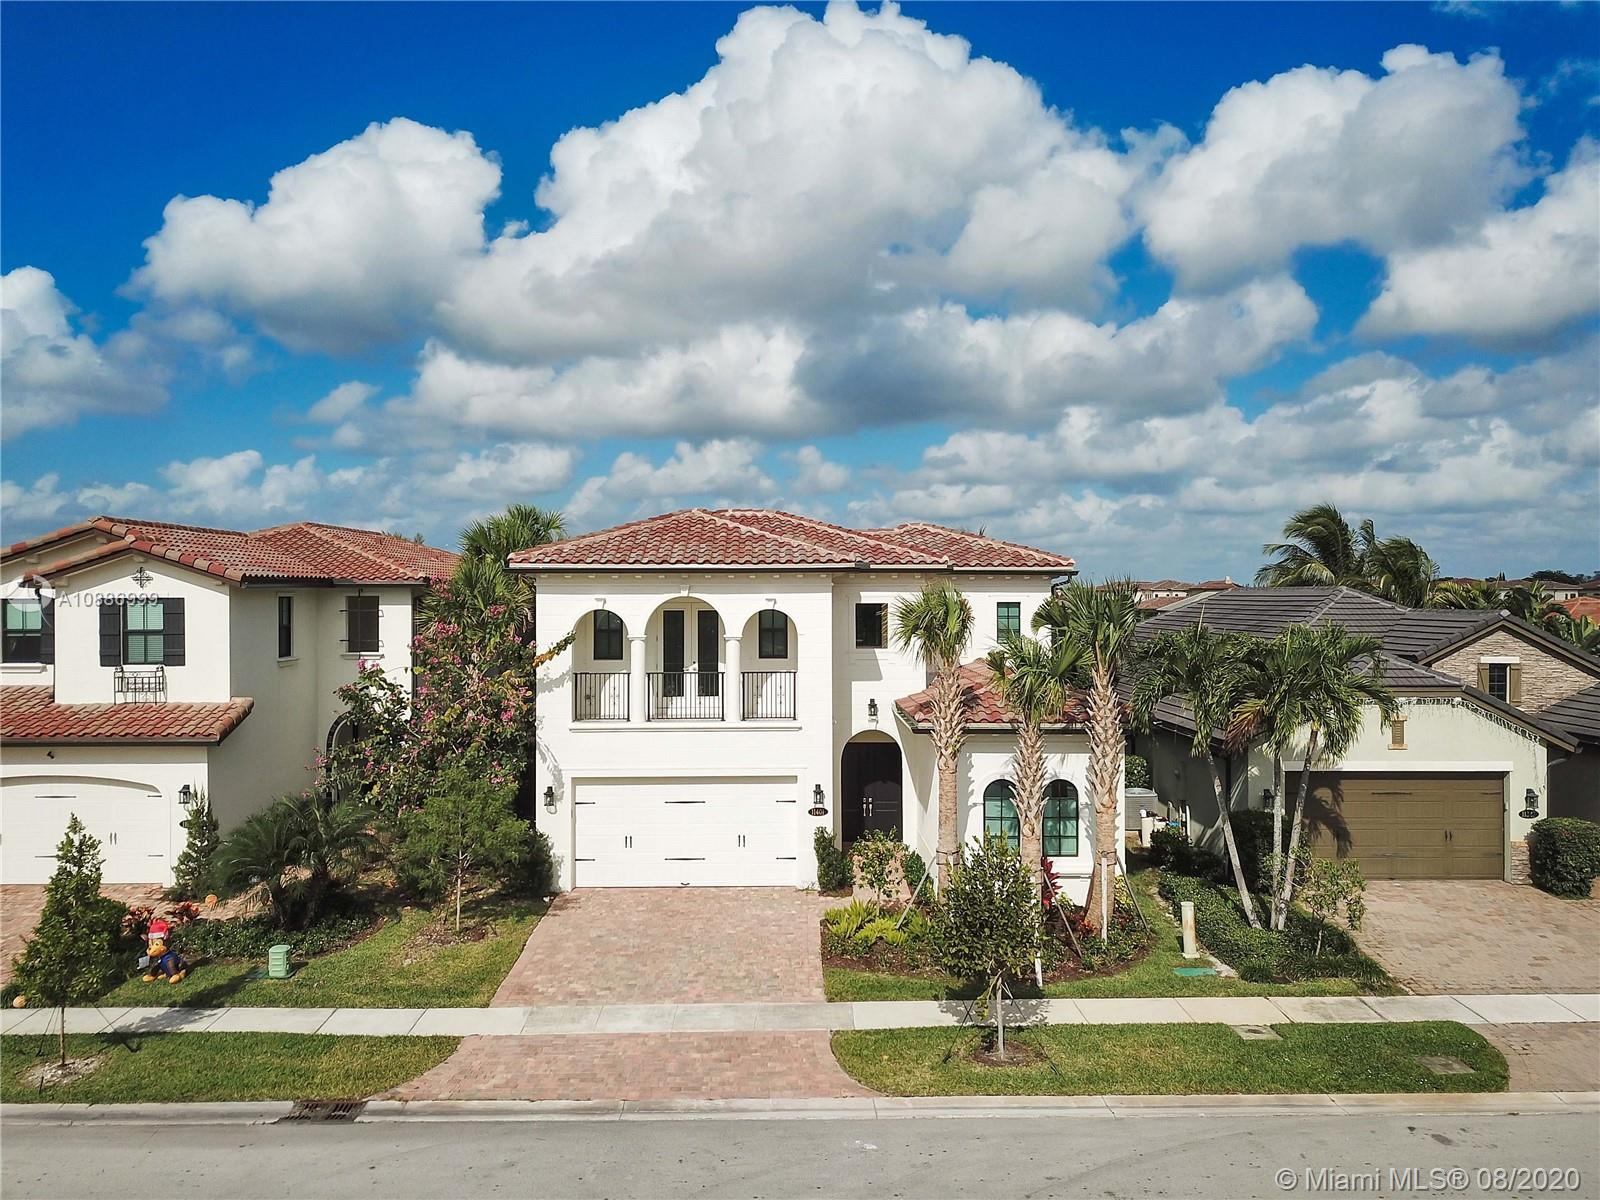 GREAT VALUE! REDUCED $32,000. This truly beautiful, brand new Estate Series, 2-story Provence model, built in 2019, has 3610 SF of living space & 4 bedrooms each with spectacular en-suite bathrooms. The master suite, on the ground floor, has twin walk-in closets, double basins & elegant finishes. The home has an exquisitely appointed kitchen. Features a den, an office, powder room, impact doors & windows, 10' ceilings, ample storage space & ceramic tiles on ground floor. The staircase is wooden. This beautiful home gets lots of natural lights. Includes a laundry room, 2 car garage. Backing onto a peaceful & calming lake, it sits in a gated community w/ night security patrol & included a heated pool,gym, children's play area & club house. Common & private gardens are maintained by the HOA.